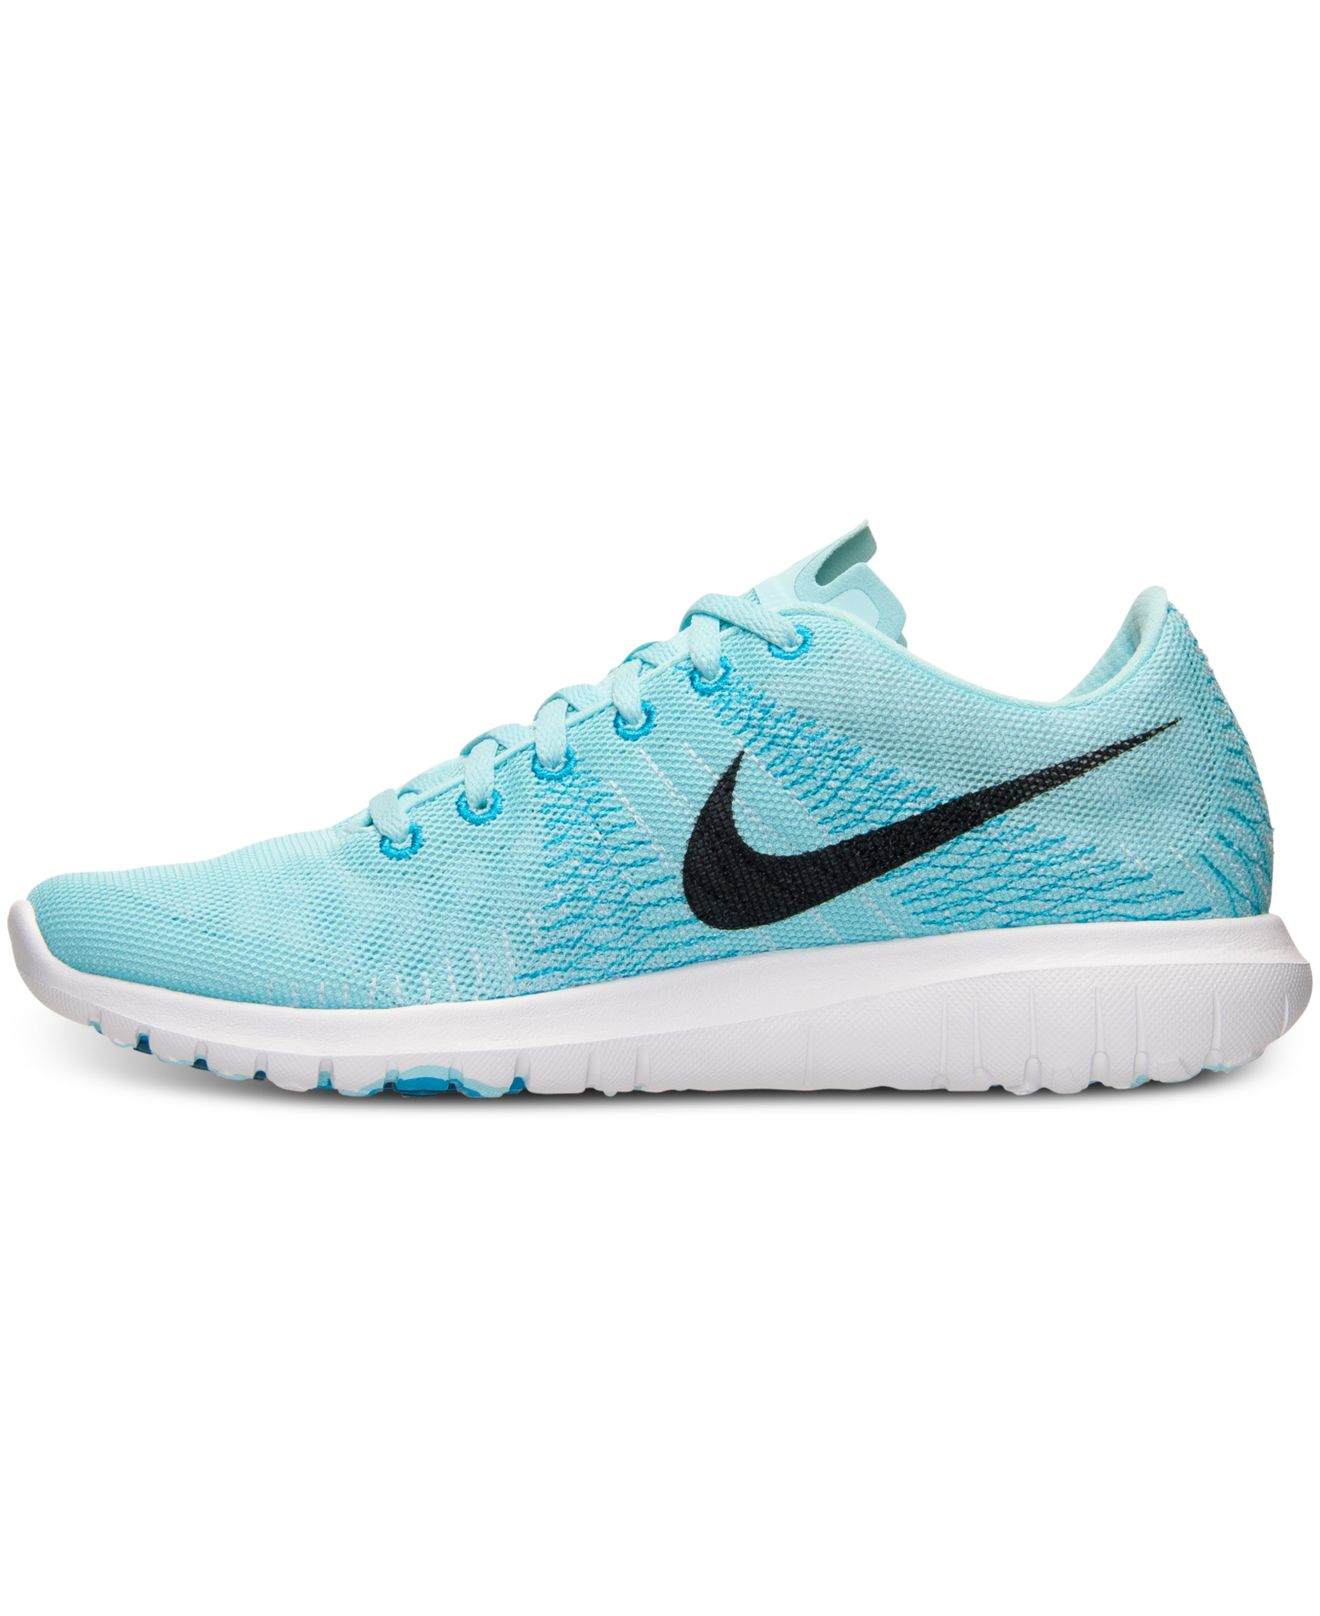 a82867bdfc5d0 ... hot lyst nike womens flex fury running sneakers from finish line in  blue ef824 4256d